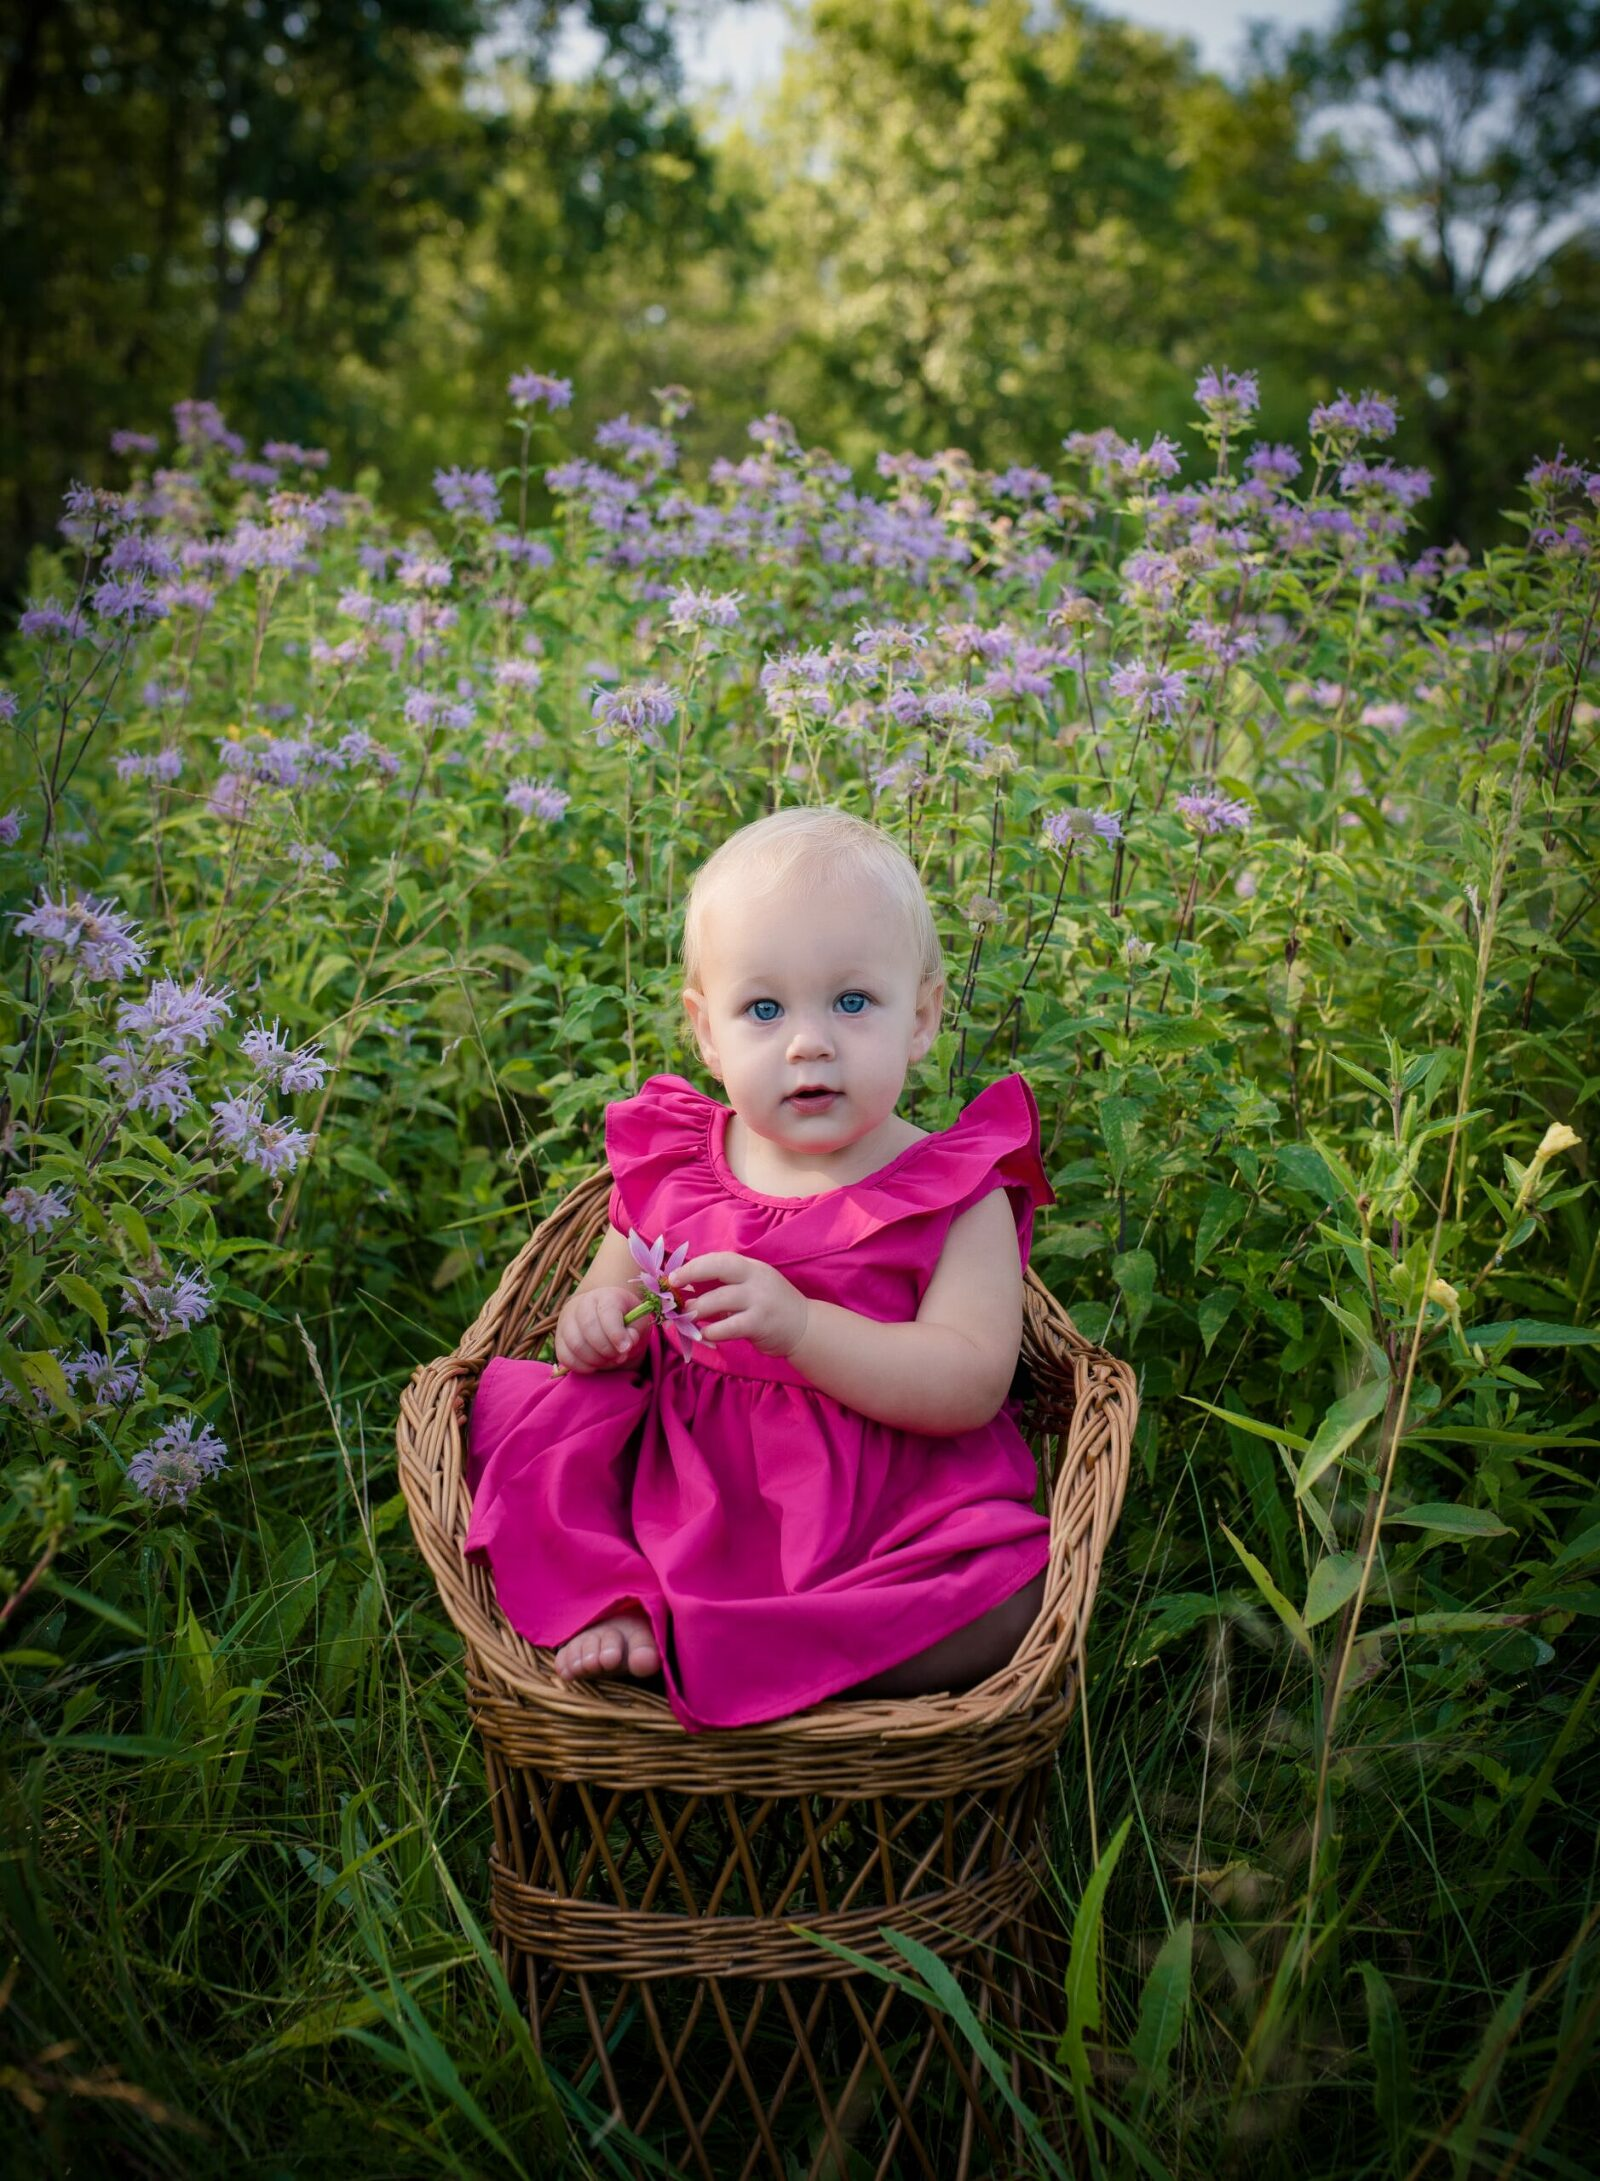 one year old girl in bright pink dress sitting on whicker chair in field of purple flowers